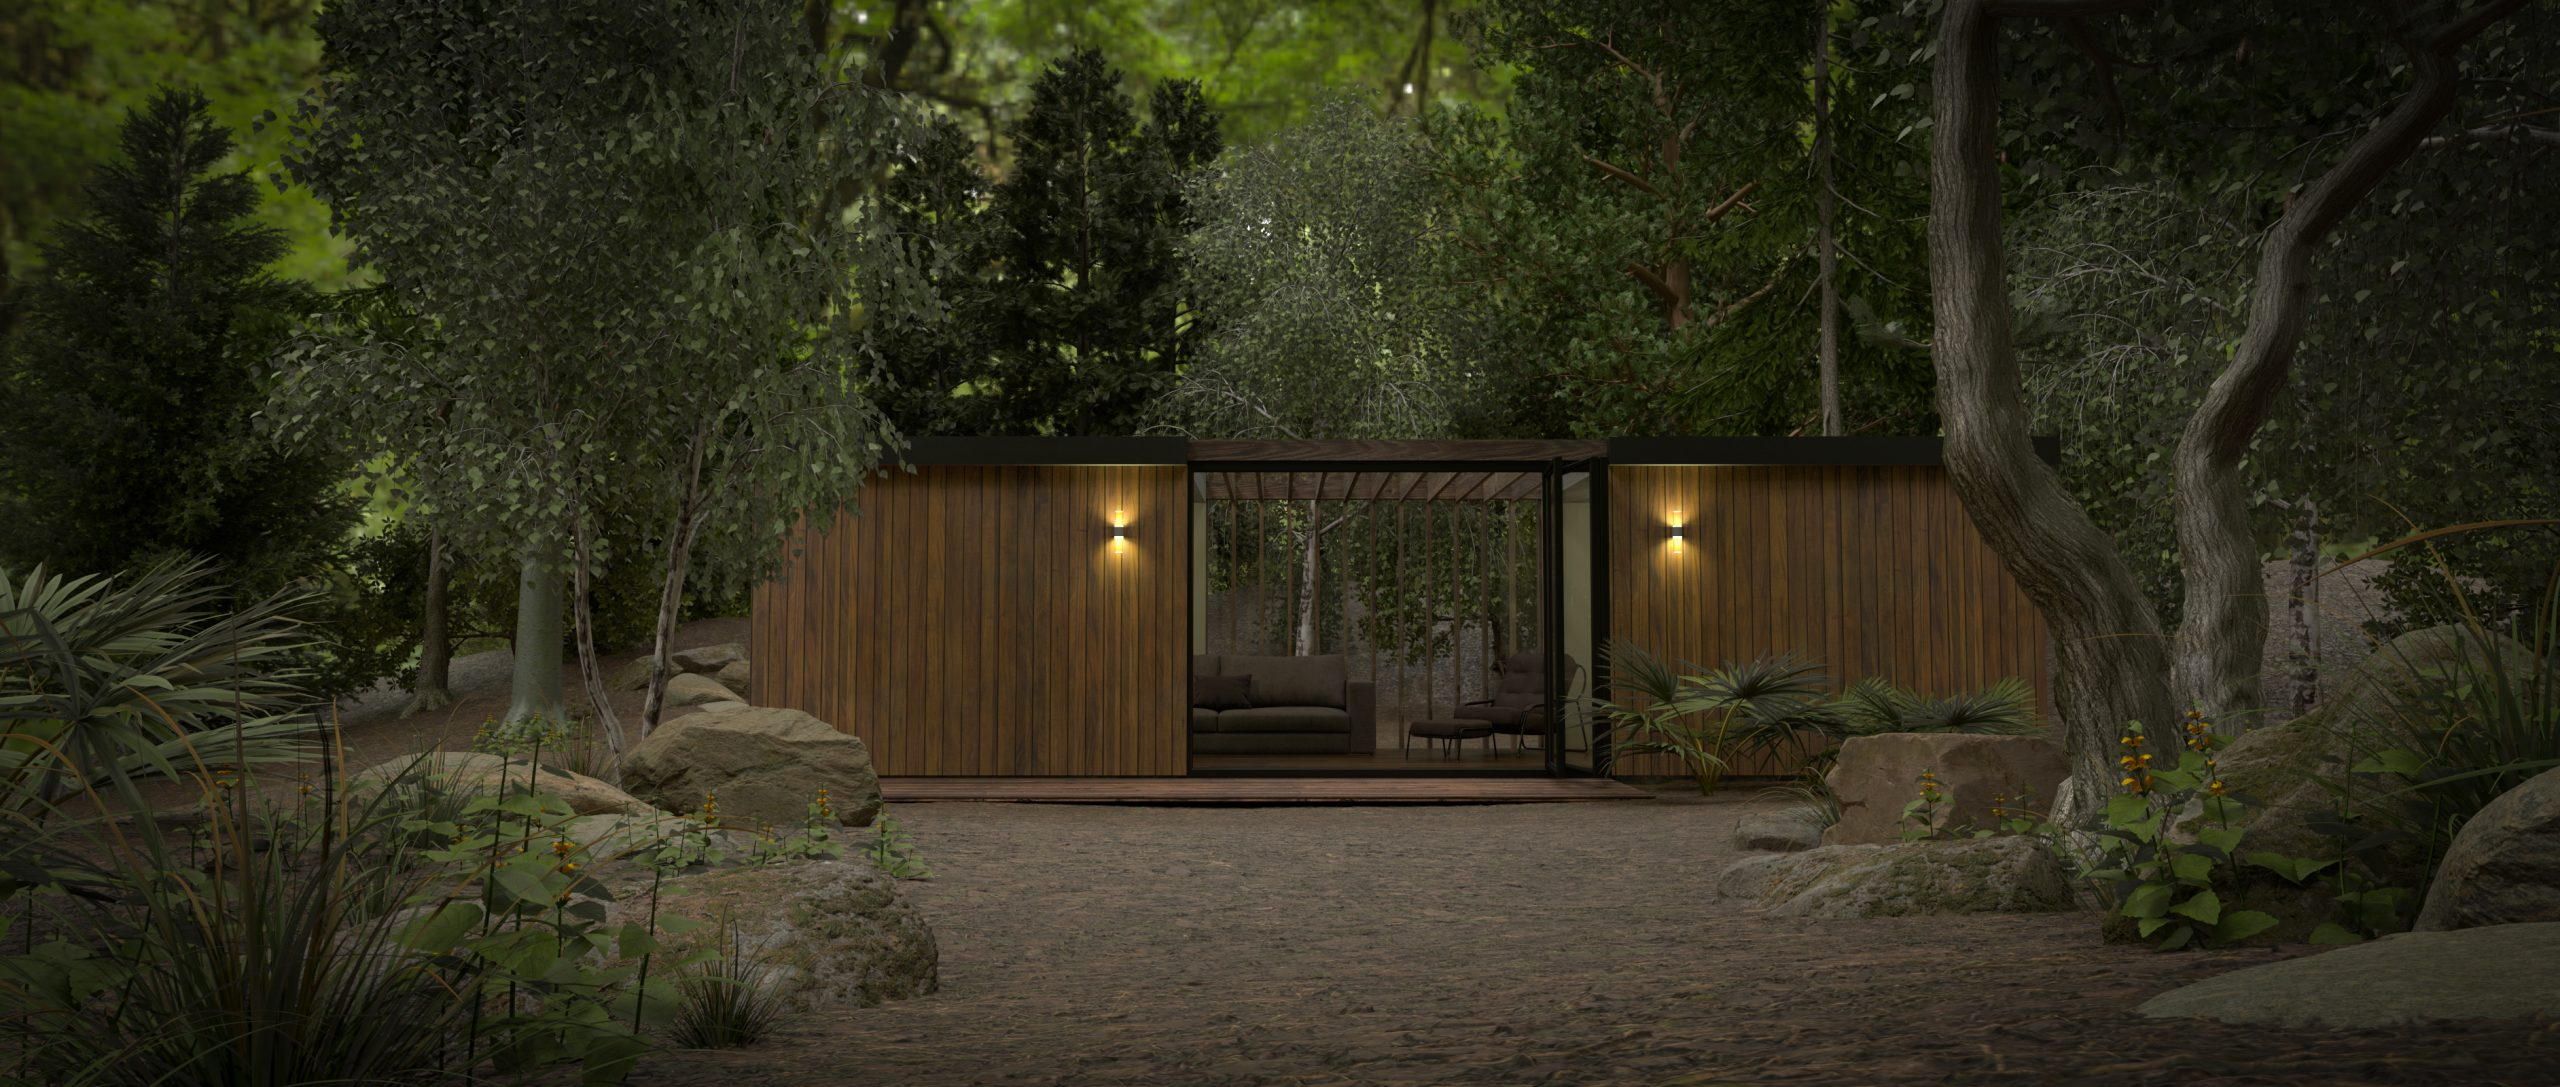 3D render of a woodland studio